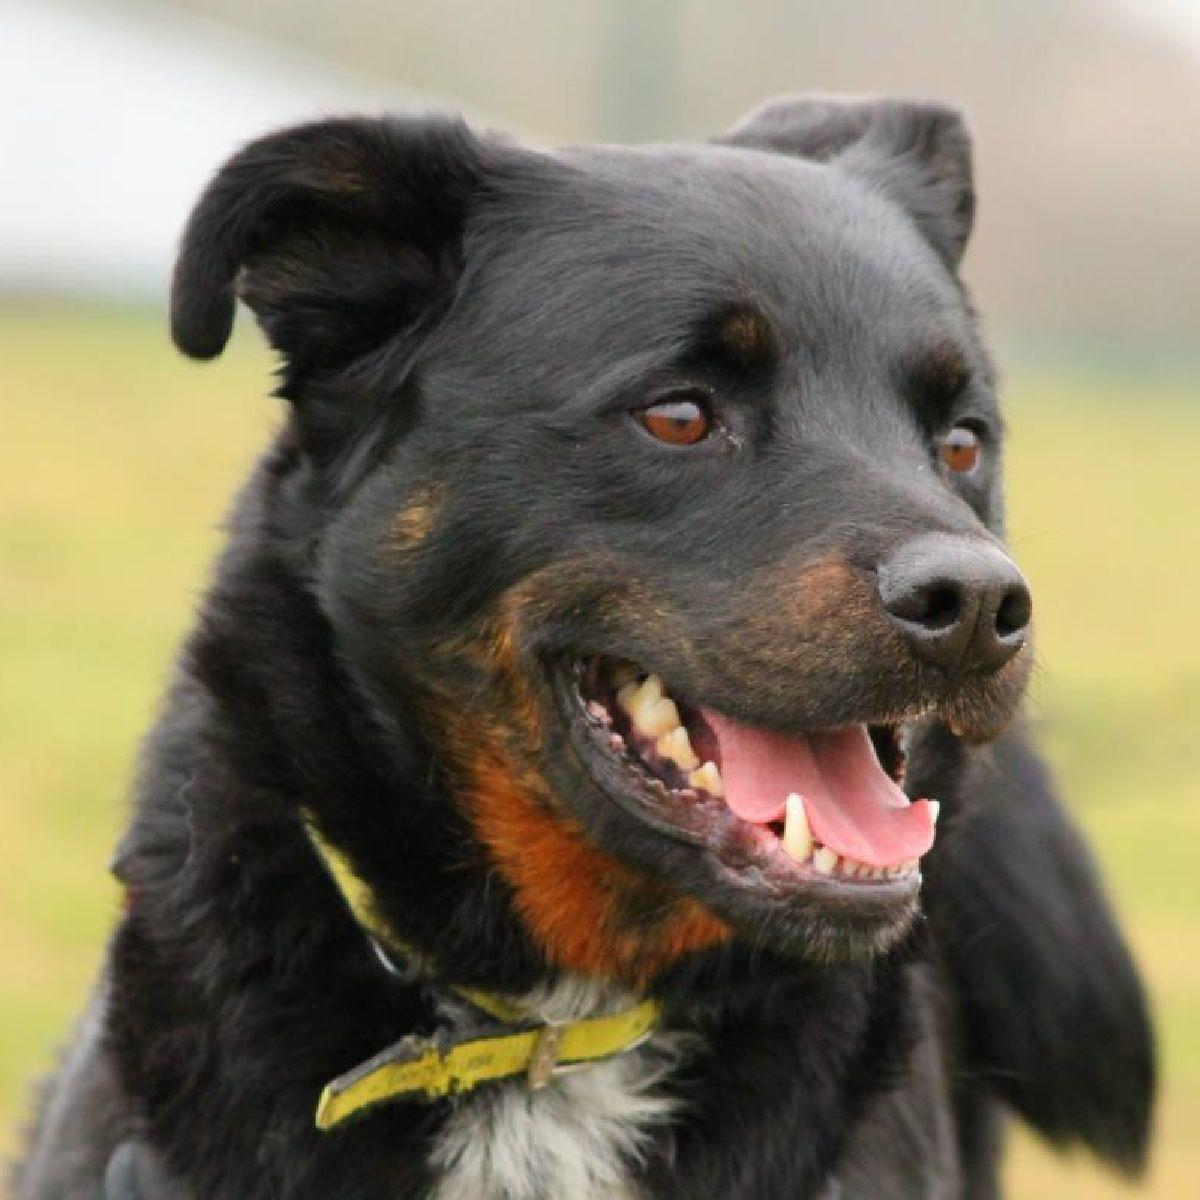 Dan is a playful boy who loves balls & tuggy toys 😍 Hes incredibly bright & eager to learn 🐾 Hes also convinced that hes a lap dog! 🐶 Dan has a worried side, but will make the perfect companion in the right home 🏡 Dan is at Dogs Trust Evesham 👉fal.cn/33zPf